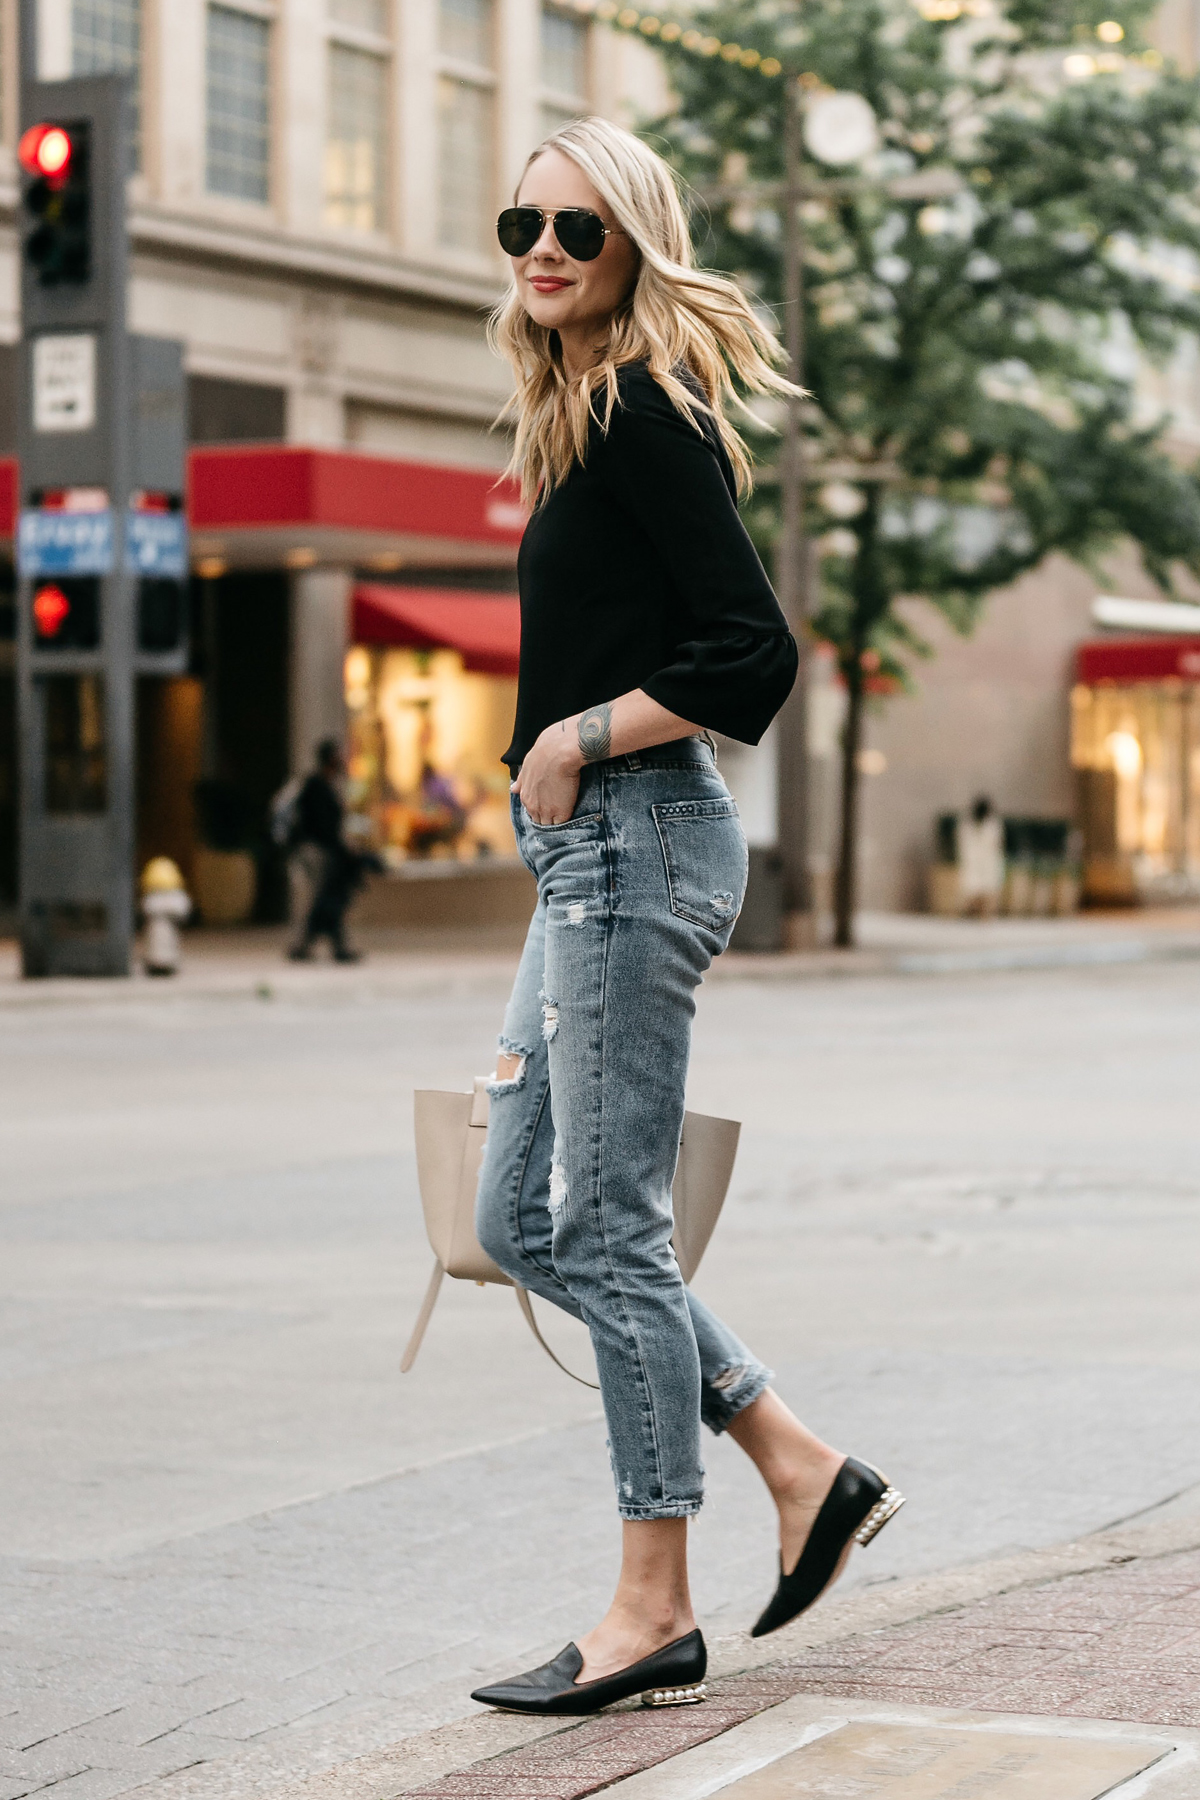 Fashion Jackson, Dallas Blogger, Fashion Blogger, Street Style, Black Bell Sleeve Top, Denim Ripped Mom Jeans, Celine Belt Bag, Celine Aviator Sunglasses, Nicholas Kirkwood Pearl Heeled Loafers